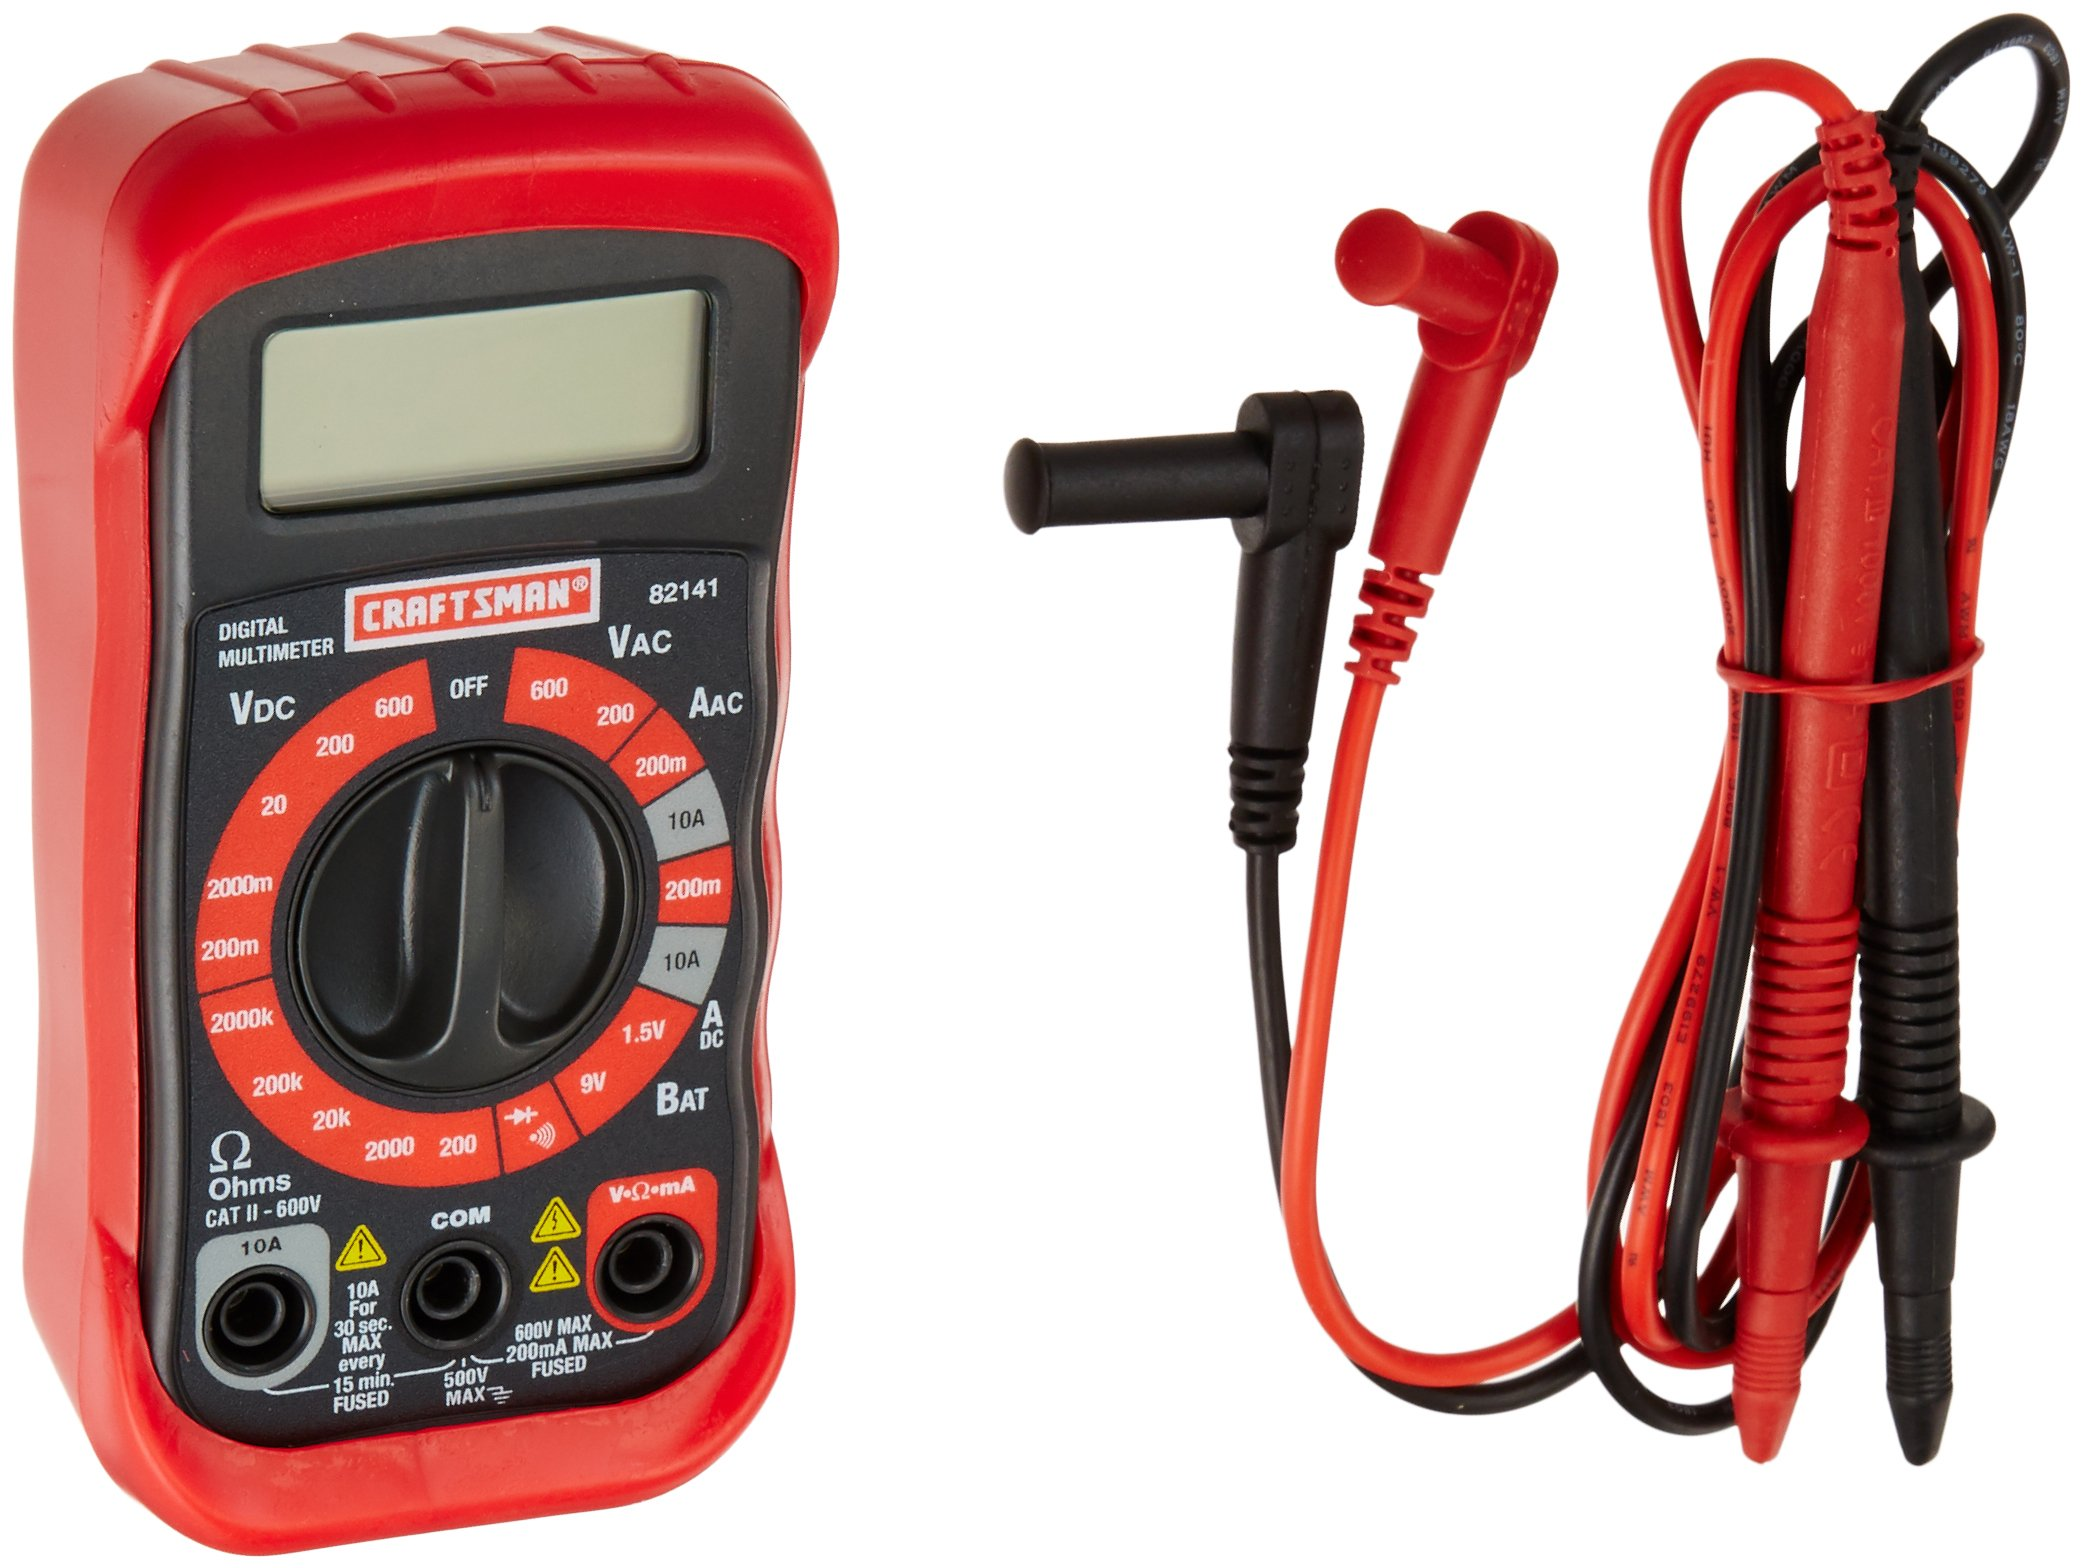 Craftsman Digital Multimeter : Craftsman digital multimeter with functions and